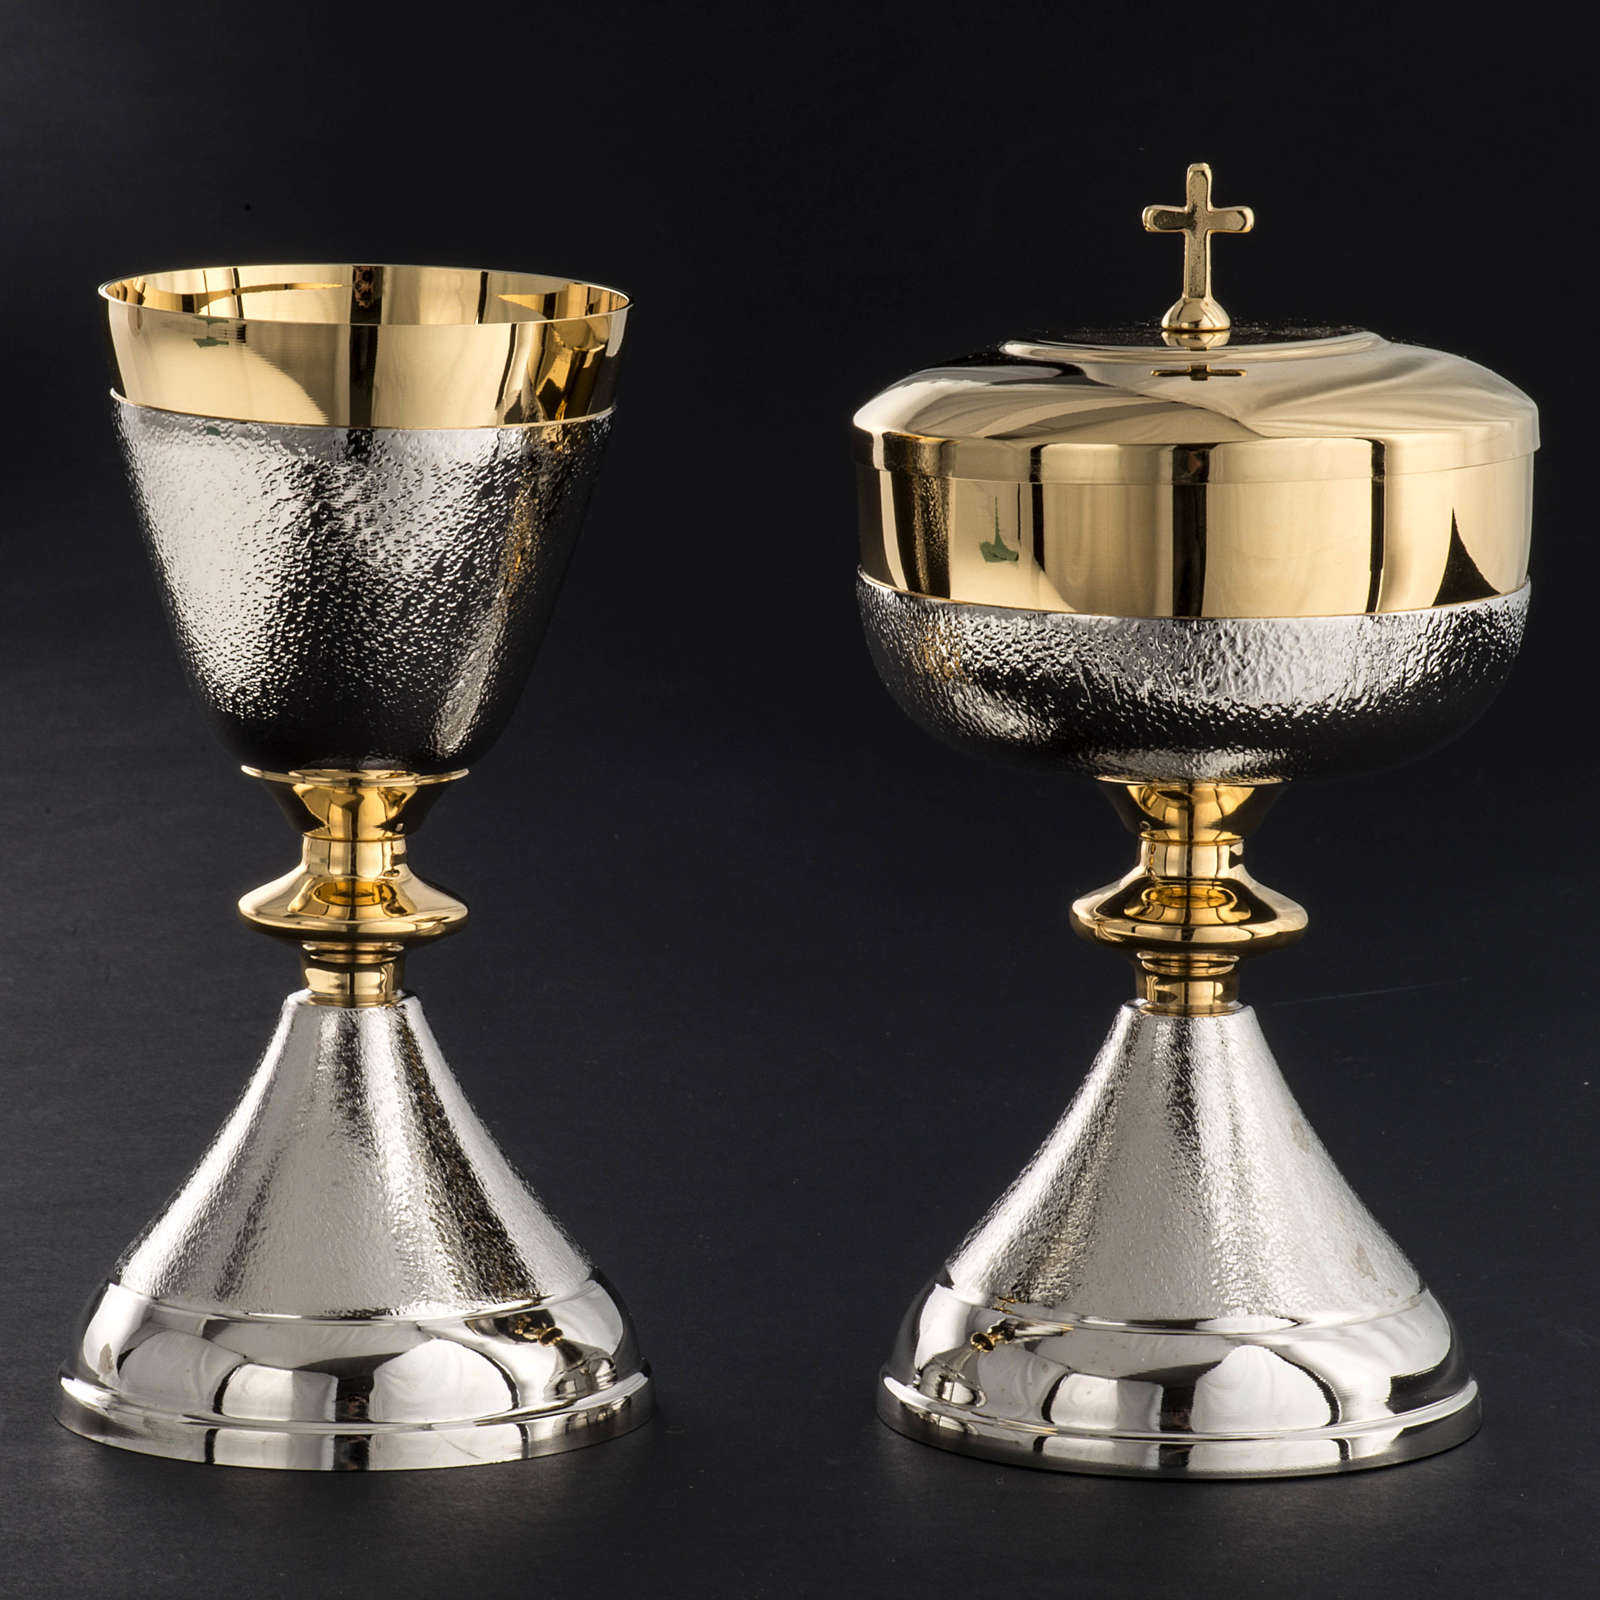 Chalice and Ciborium in silver brass, Knurled finishing 4